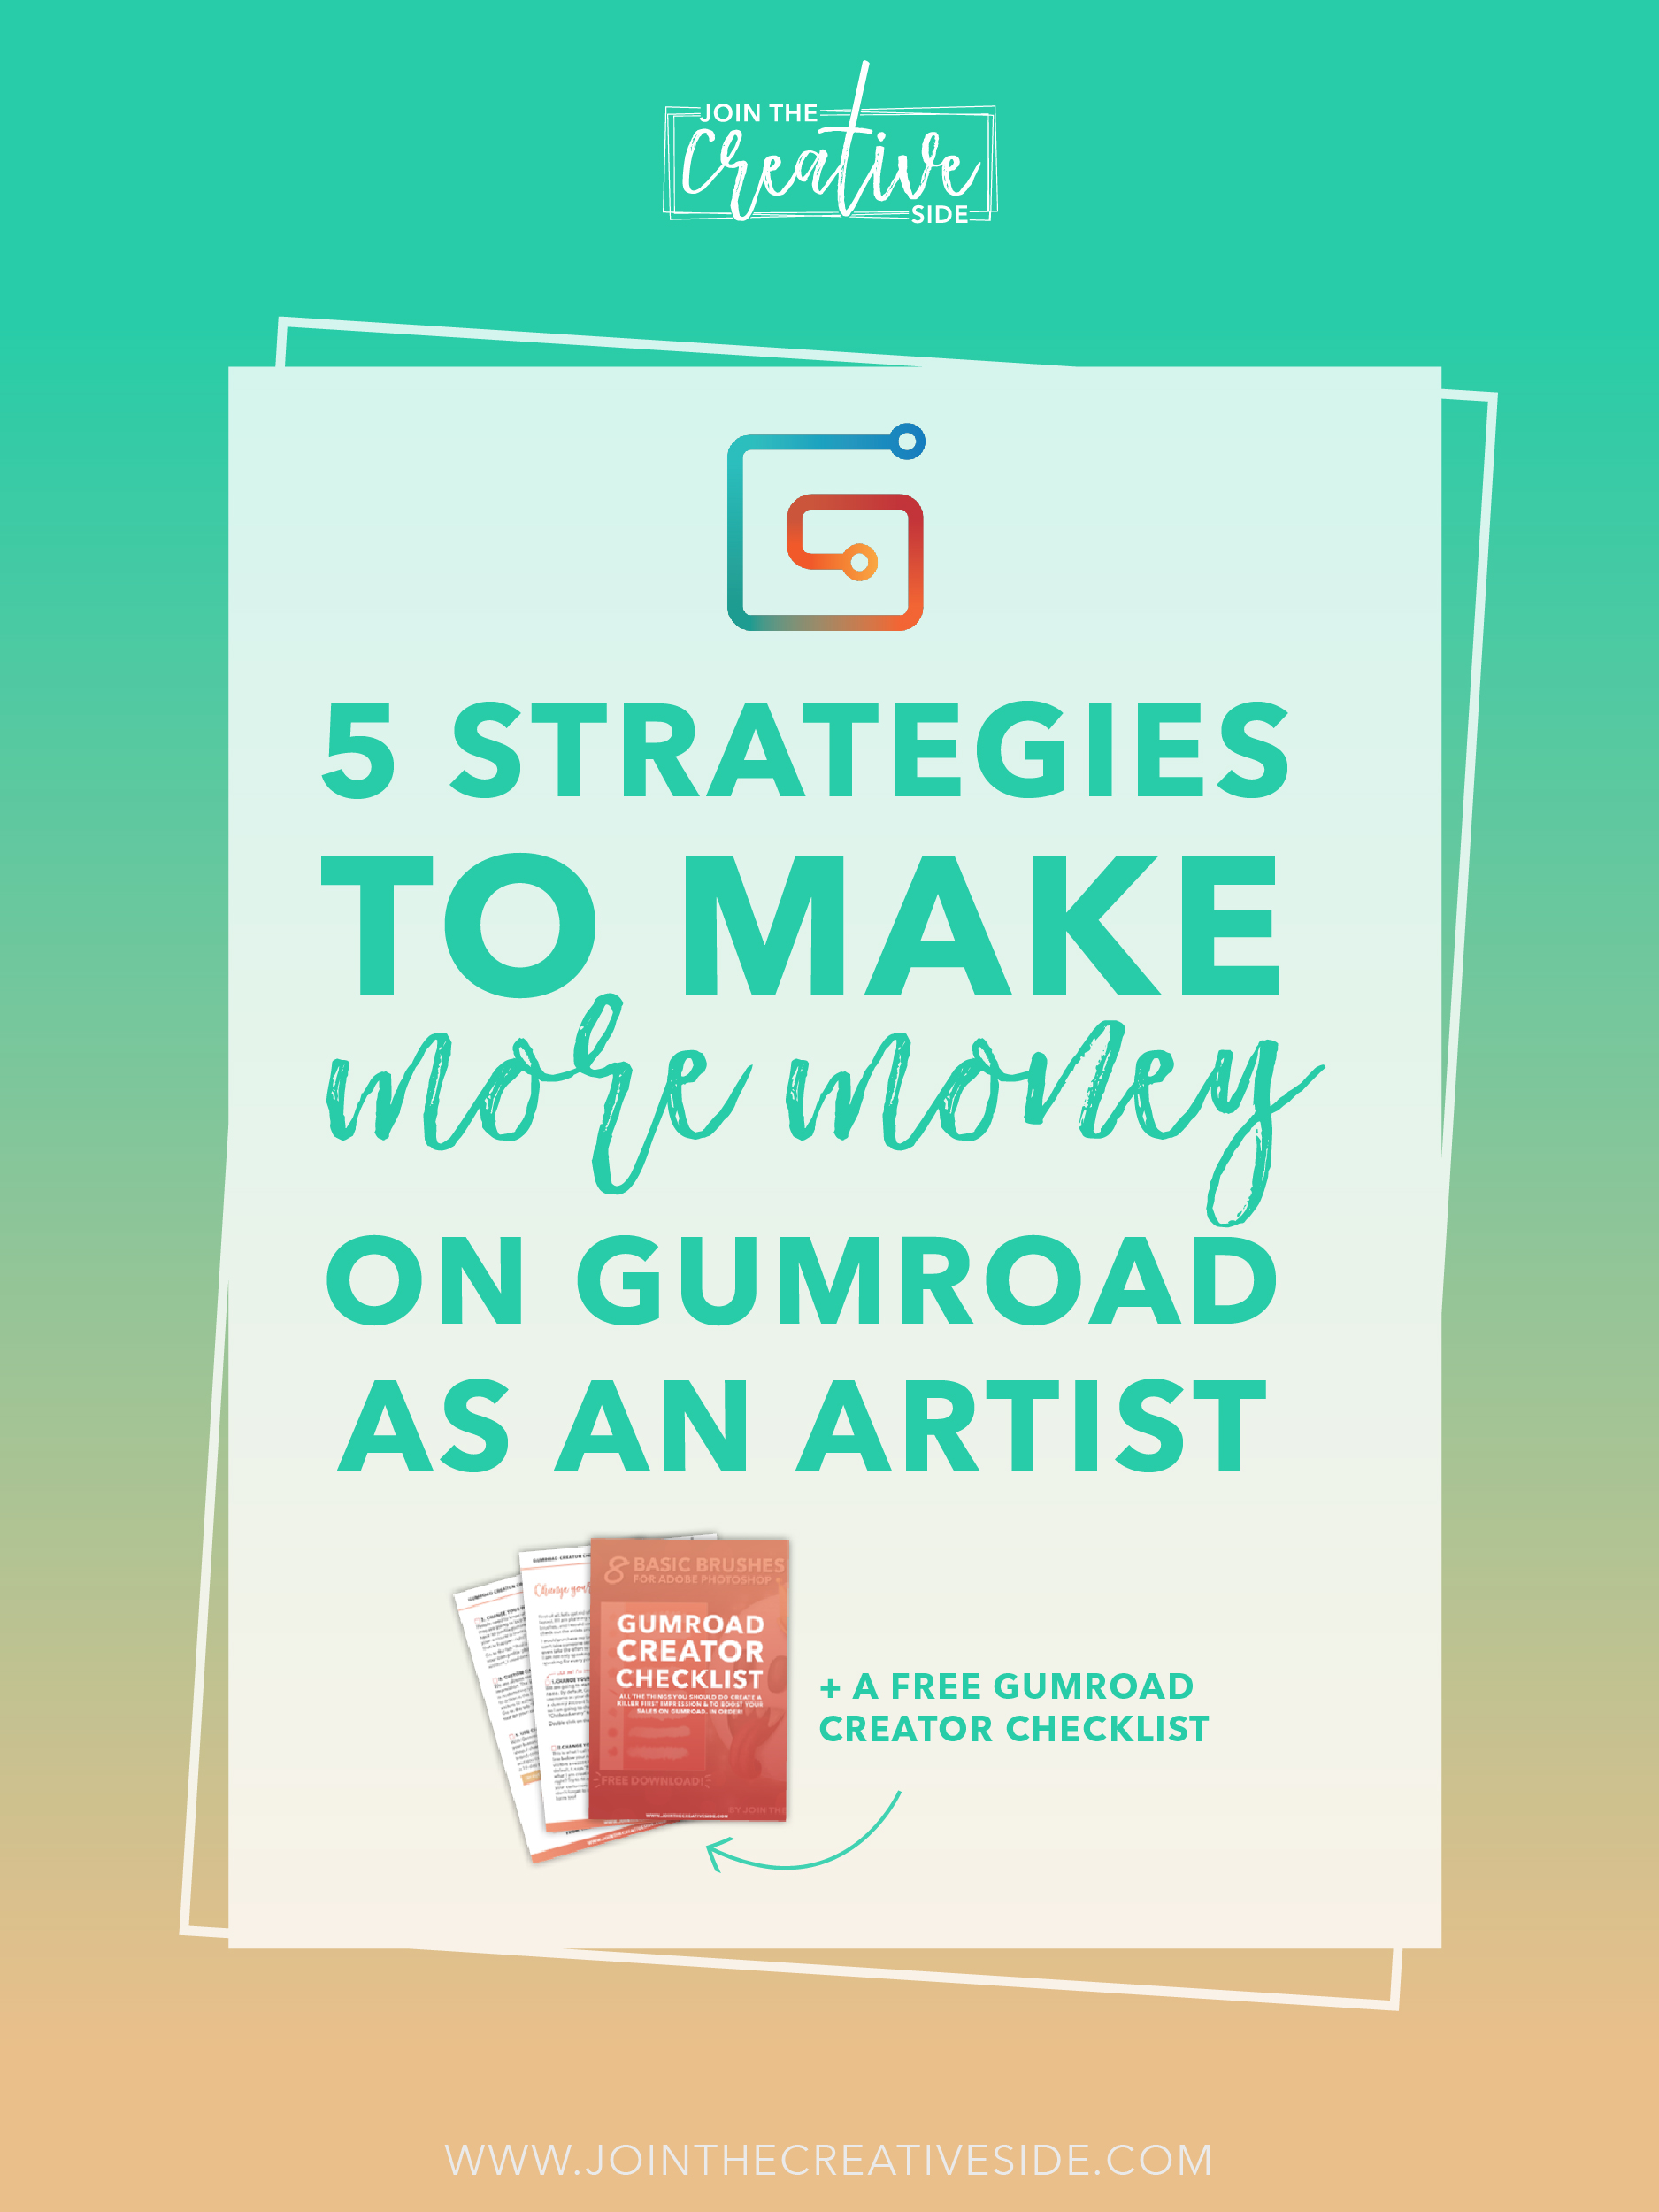 So, you have opened your Gumroad shop, and you aren't making the sales you deserve? I totally get you. Your hand-made Photoshop or Procreate brushes (or any other digital products) deserve it to make more money. That's why I am going to give you 5 tips to make money on Gumroad as an artist, so you can finally earn some income with your creative career. #Gumroad #digitalart #photoshopbrushes #procreatebrushes #makemoneyartist #sellart